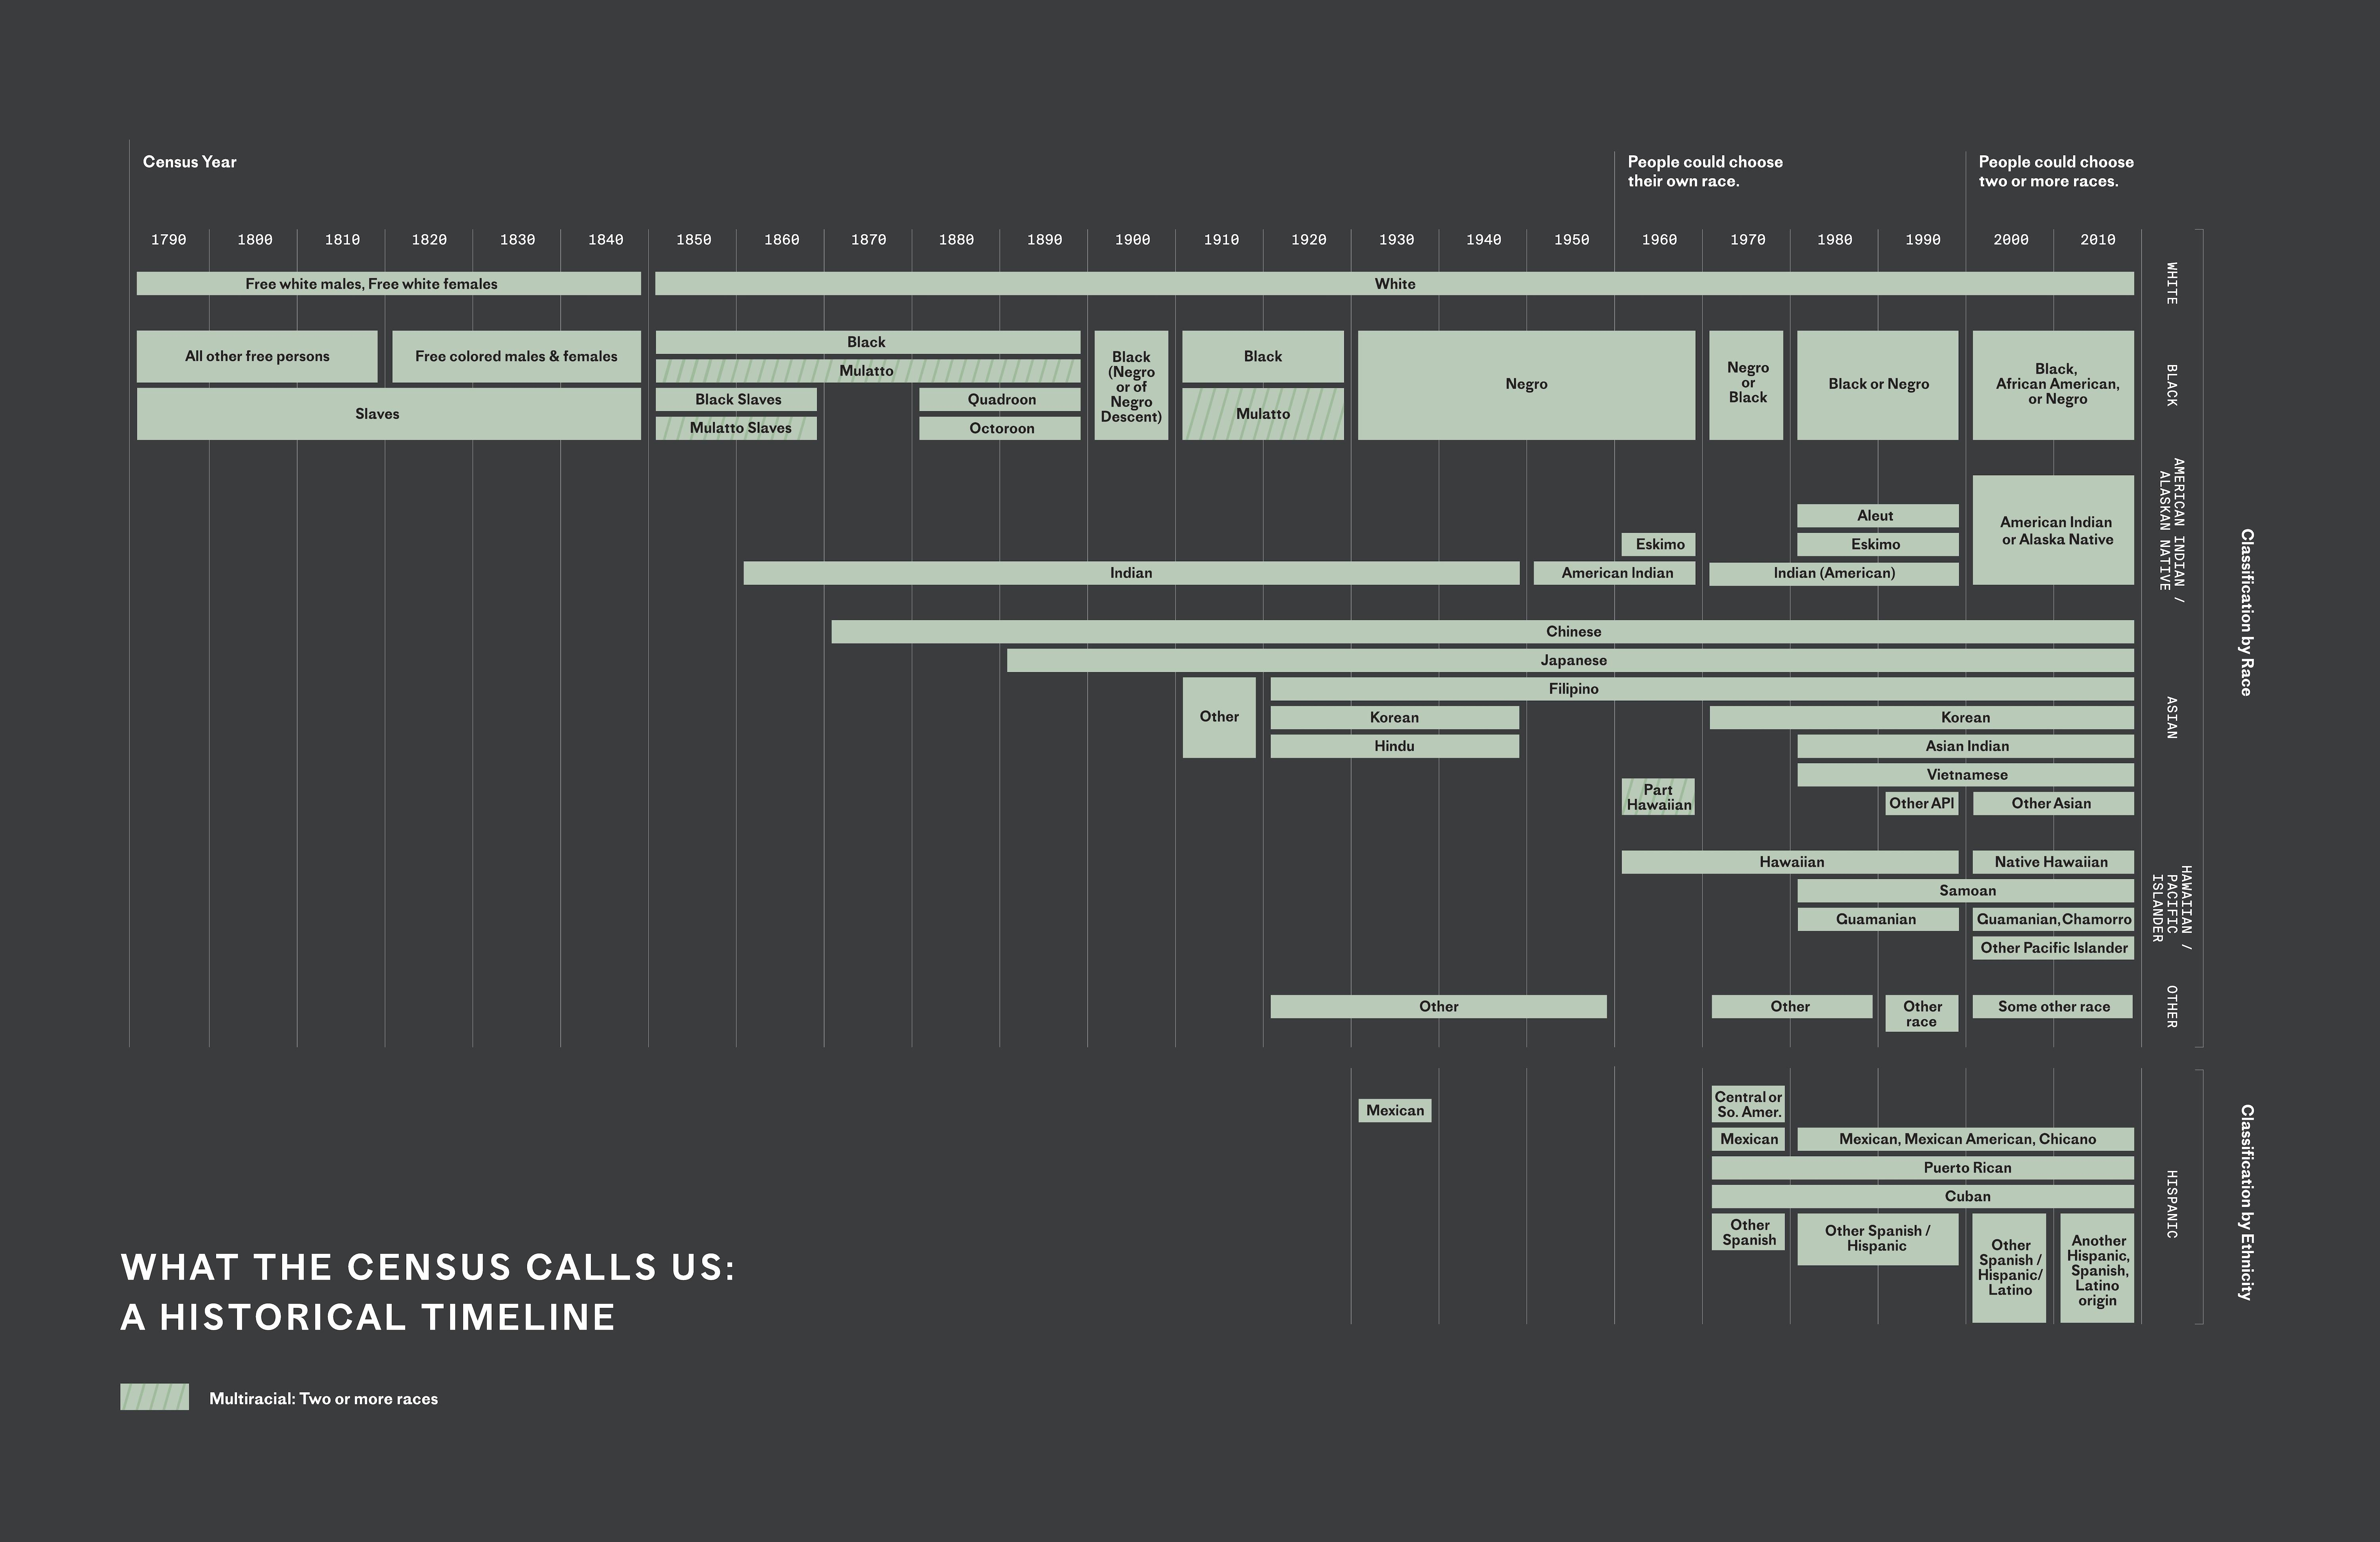 Timeline of racial categories included in the census.